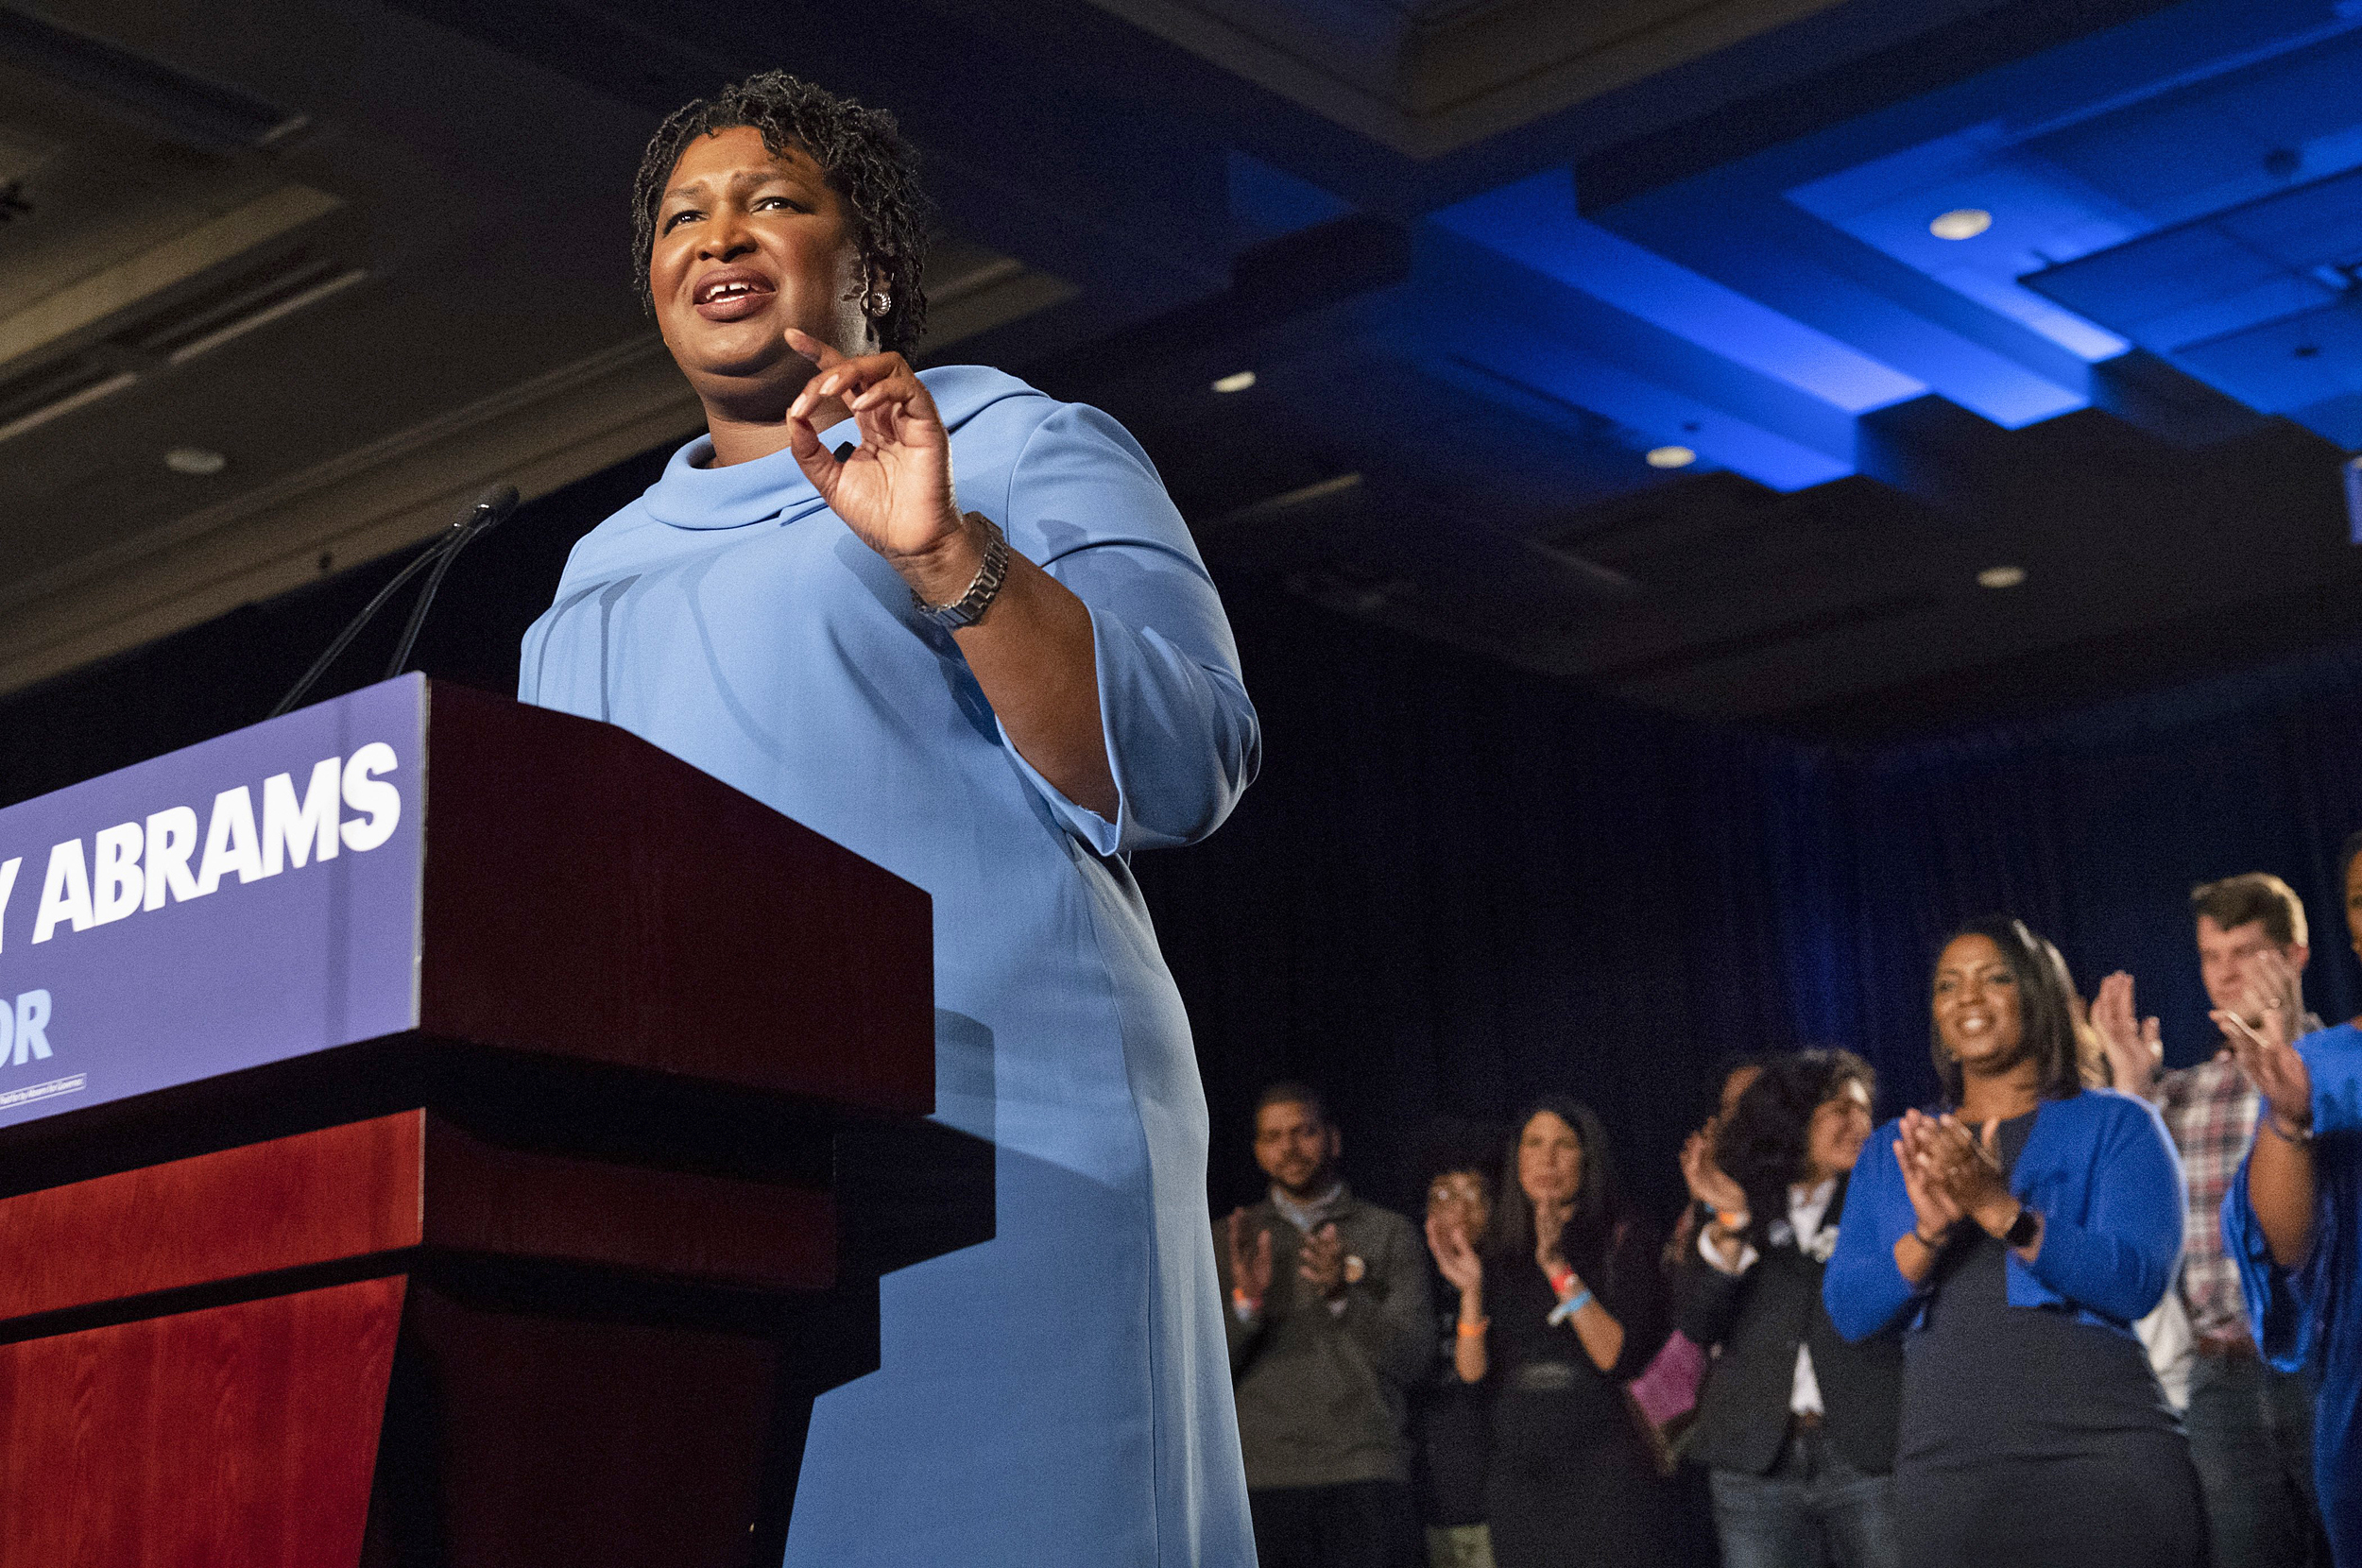 Abrams doesn't concede, predicts Georgia governor's race will go to runoff